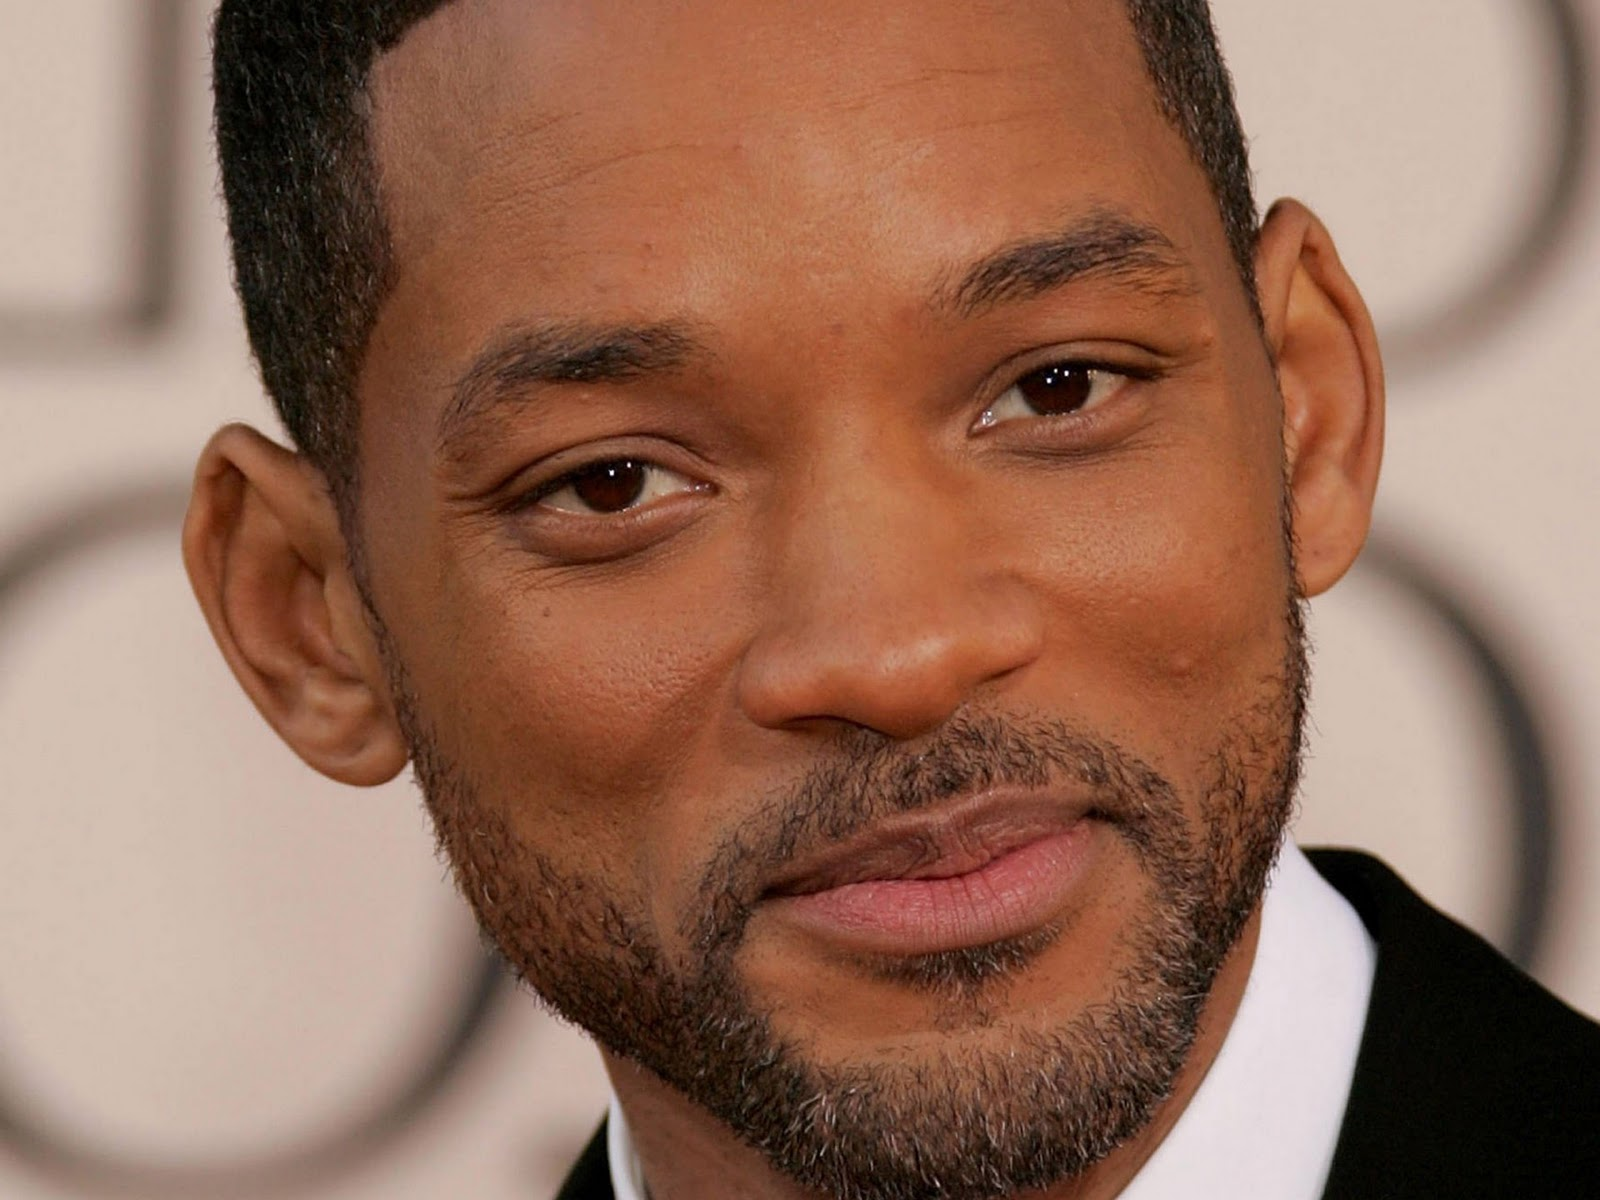 beautiful will smith widescreen high quality wallpaper images of 1600x1200